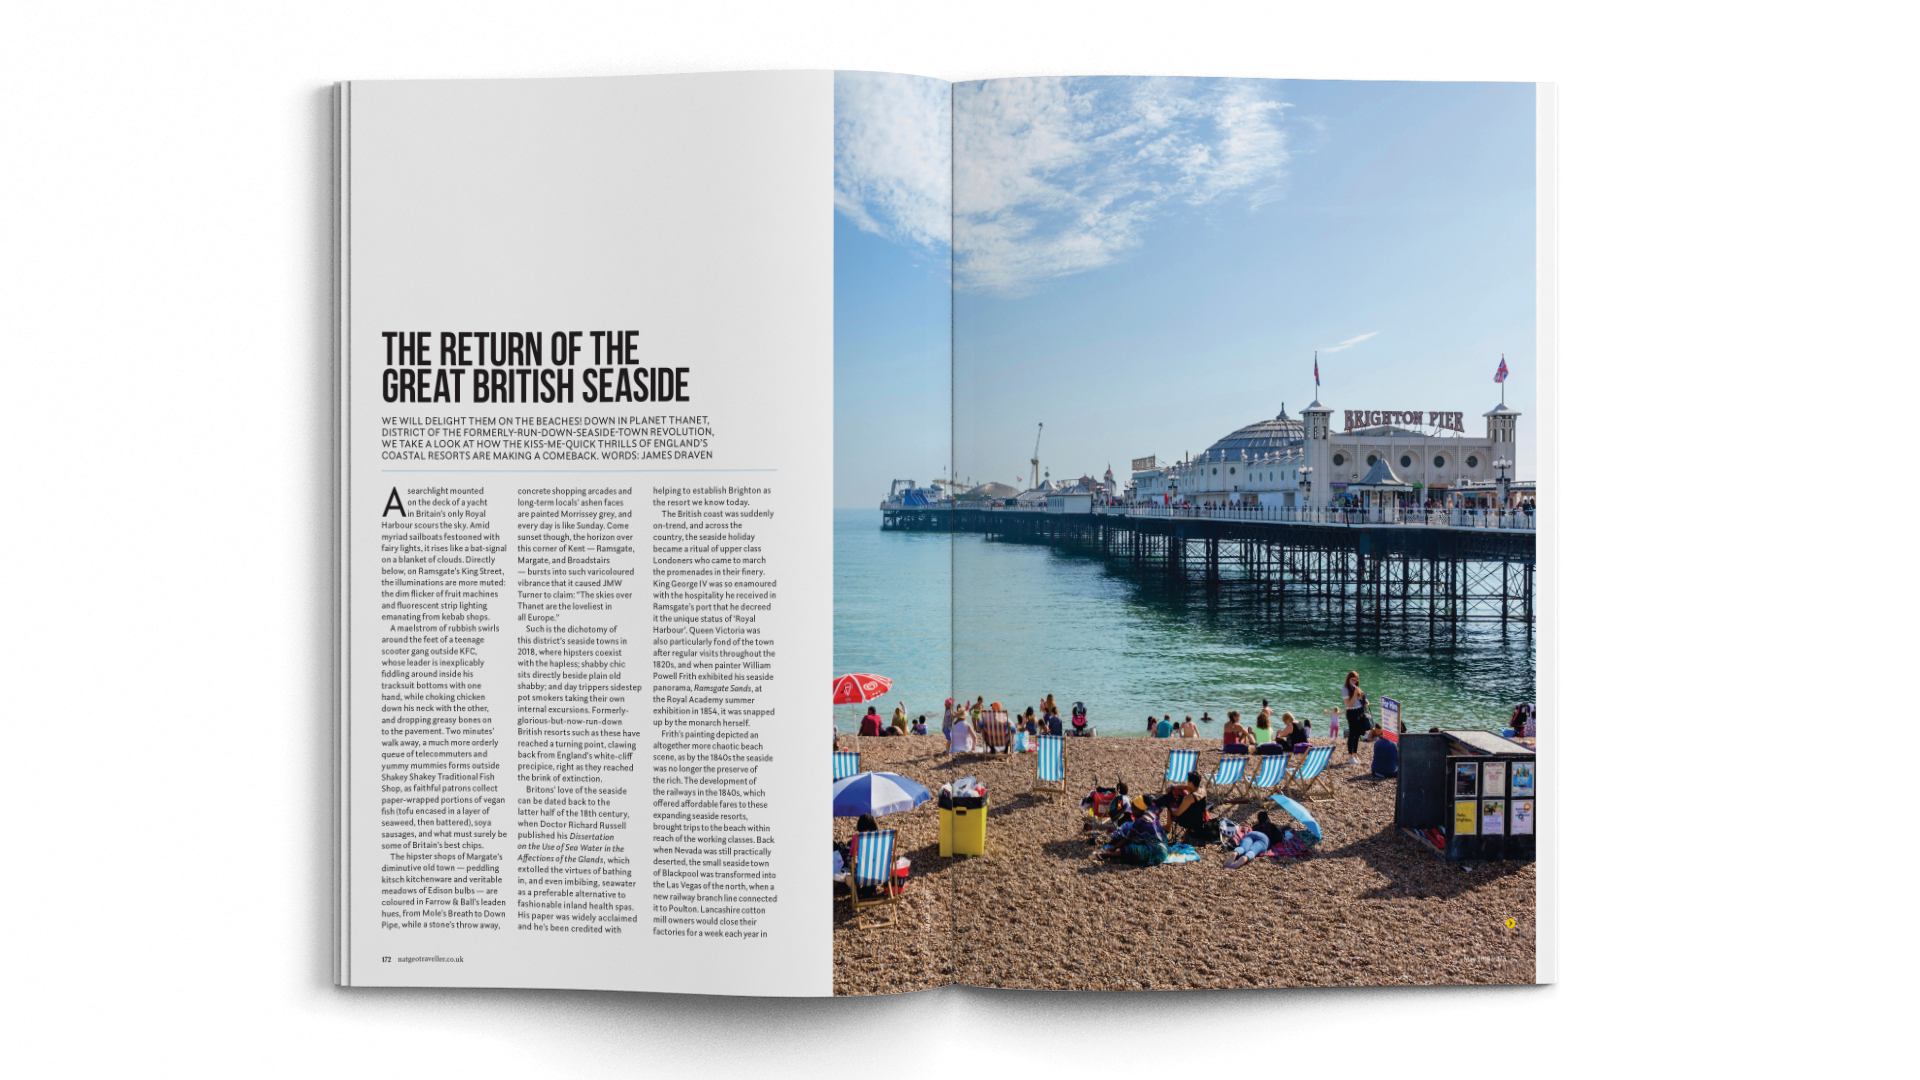 A4-Magazine-DPS-NGT-TT-Report-GB-Seaside-1